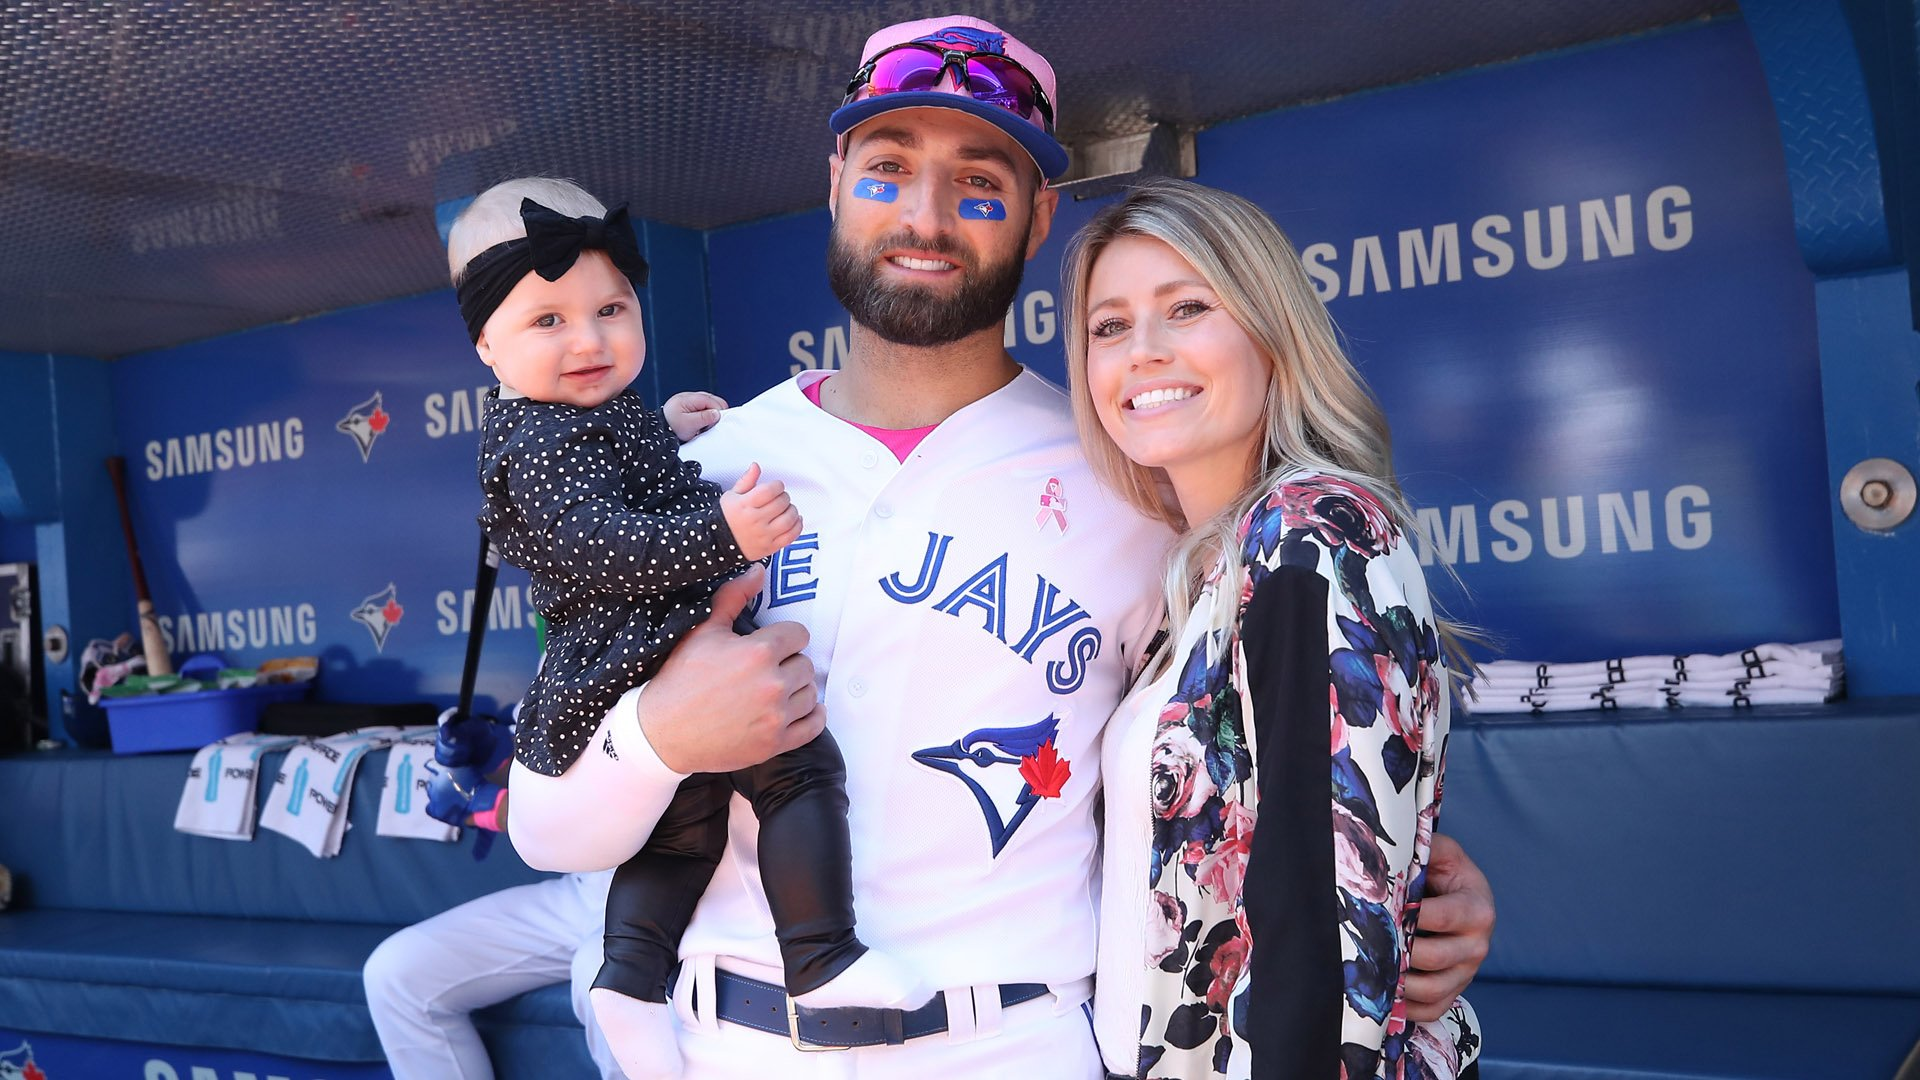 Kevin Pillar, formerly #11 of the Toronto Blue Jays, poses with his wife and baby on Mother's Day before the start of MLB game action against the Boston Red Sox at Rogers Centre on May 13, 2018, in Toronto, Canada. (Credit: Tom Szczerbowski/Getty Images)